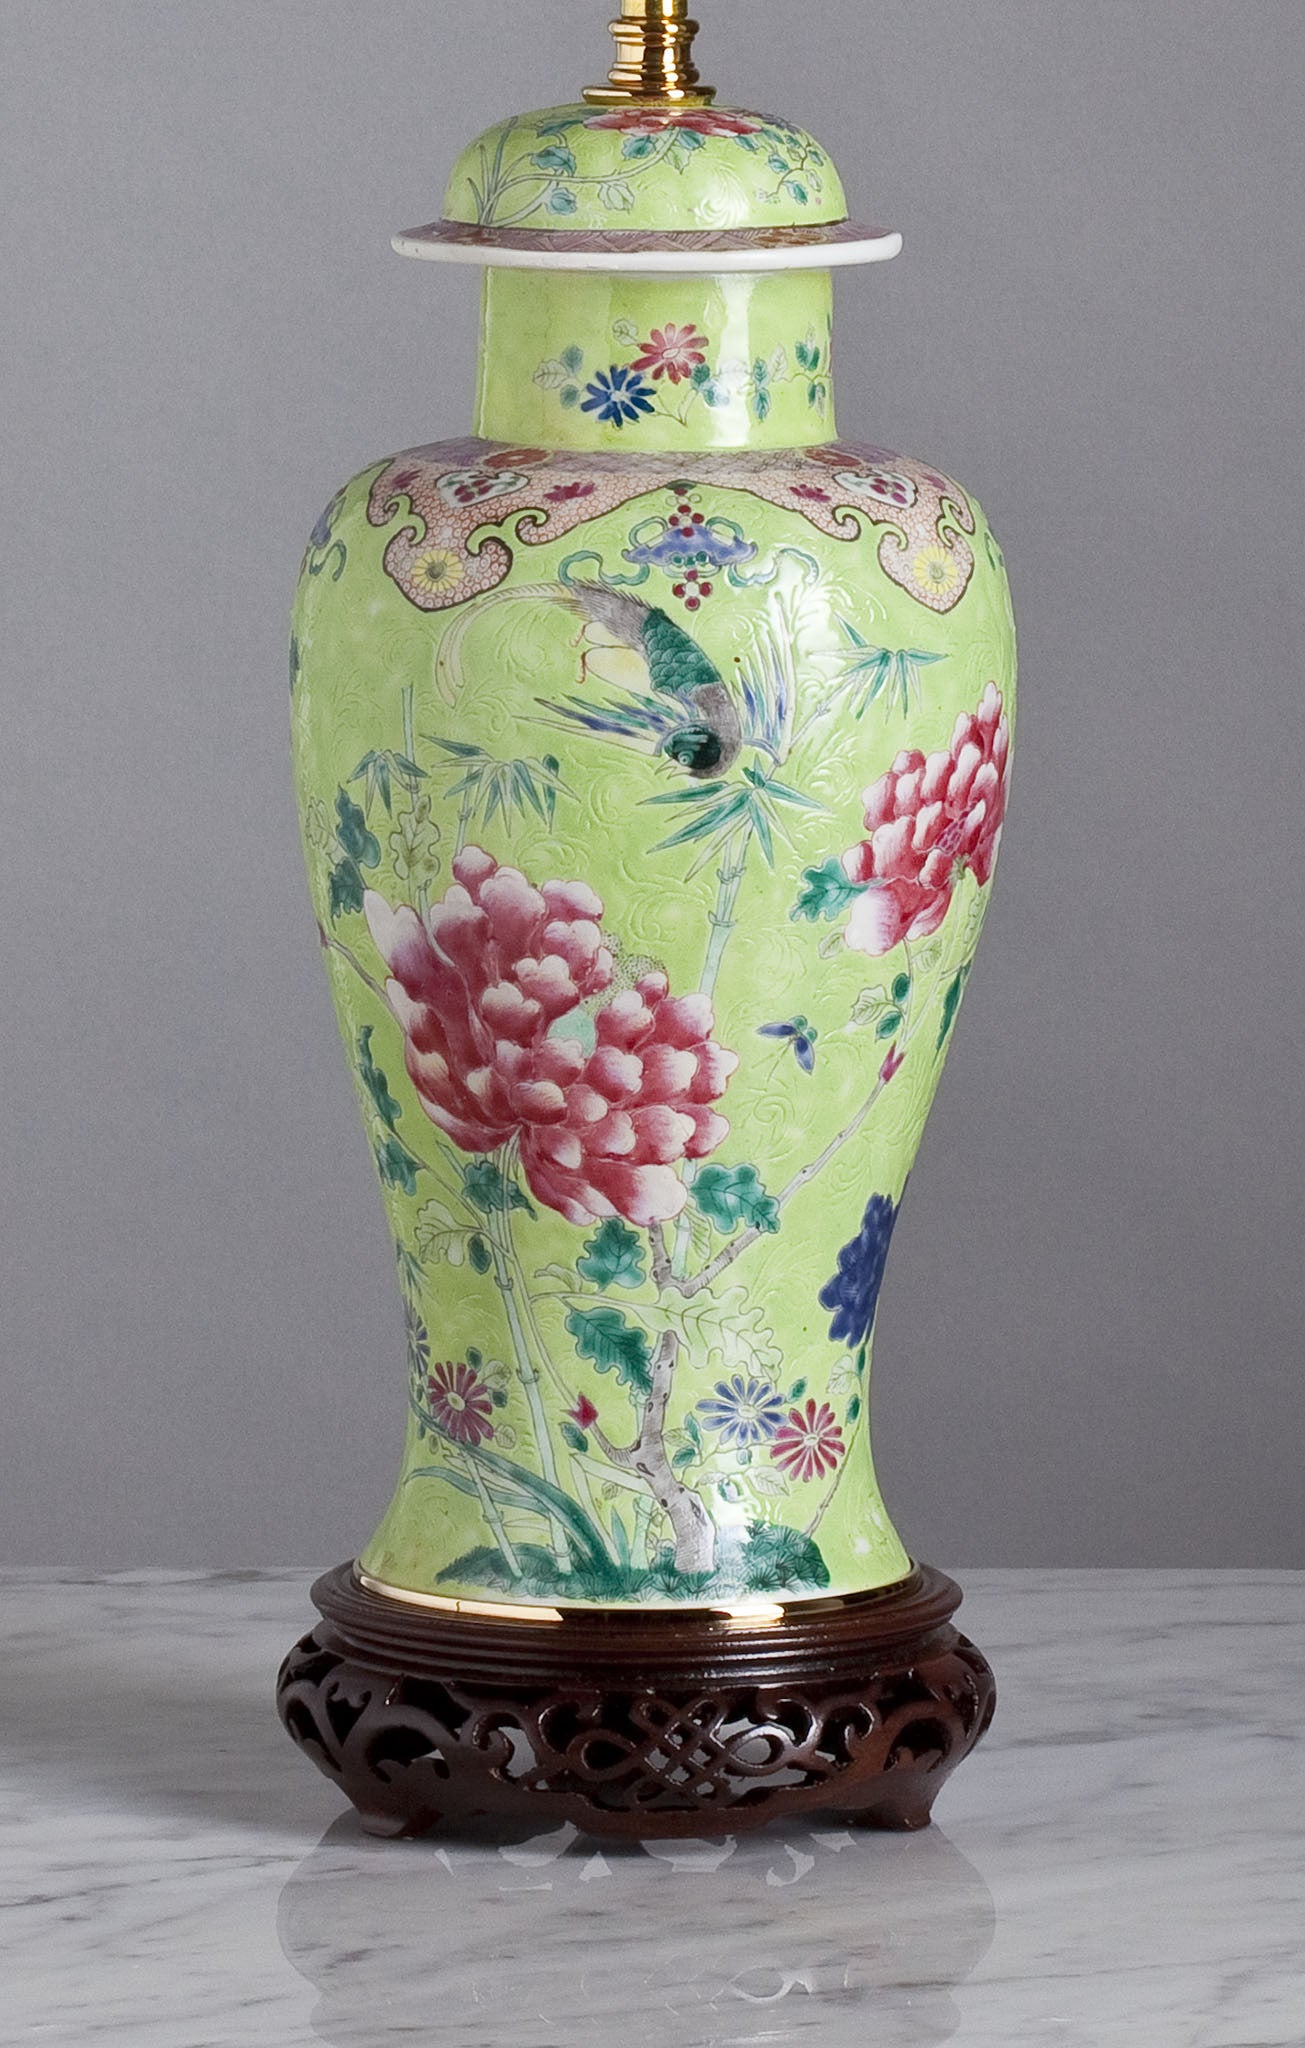 F045  An Early 19th Century, Chinese Lamp With A Rare Lime Green Colour - Circa 1820